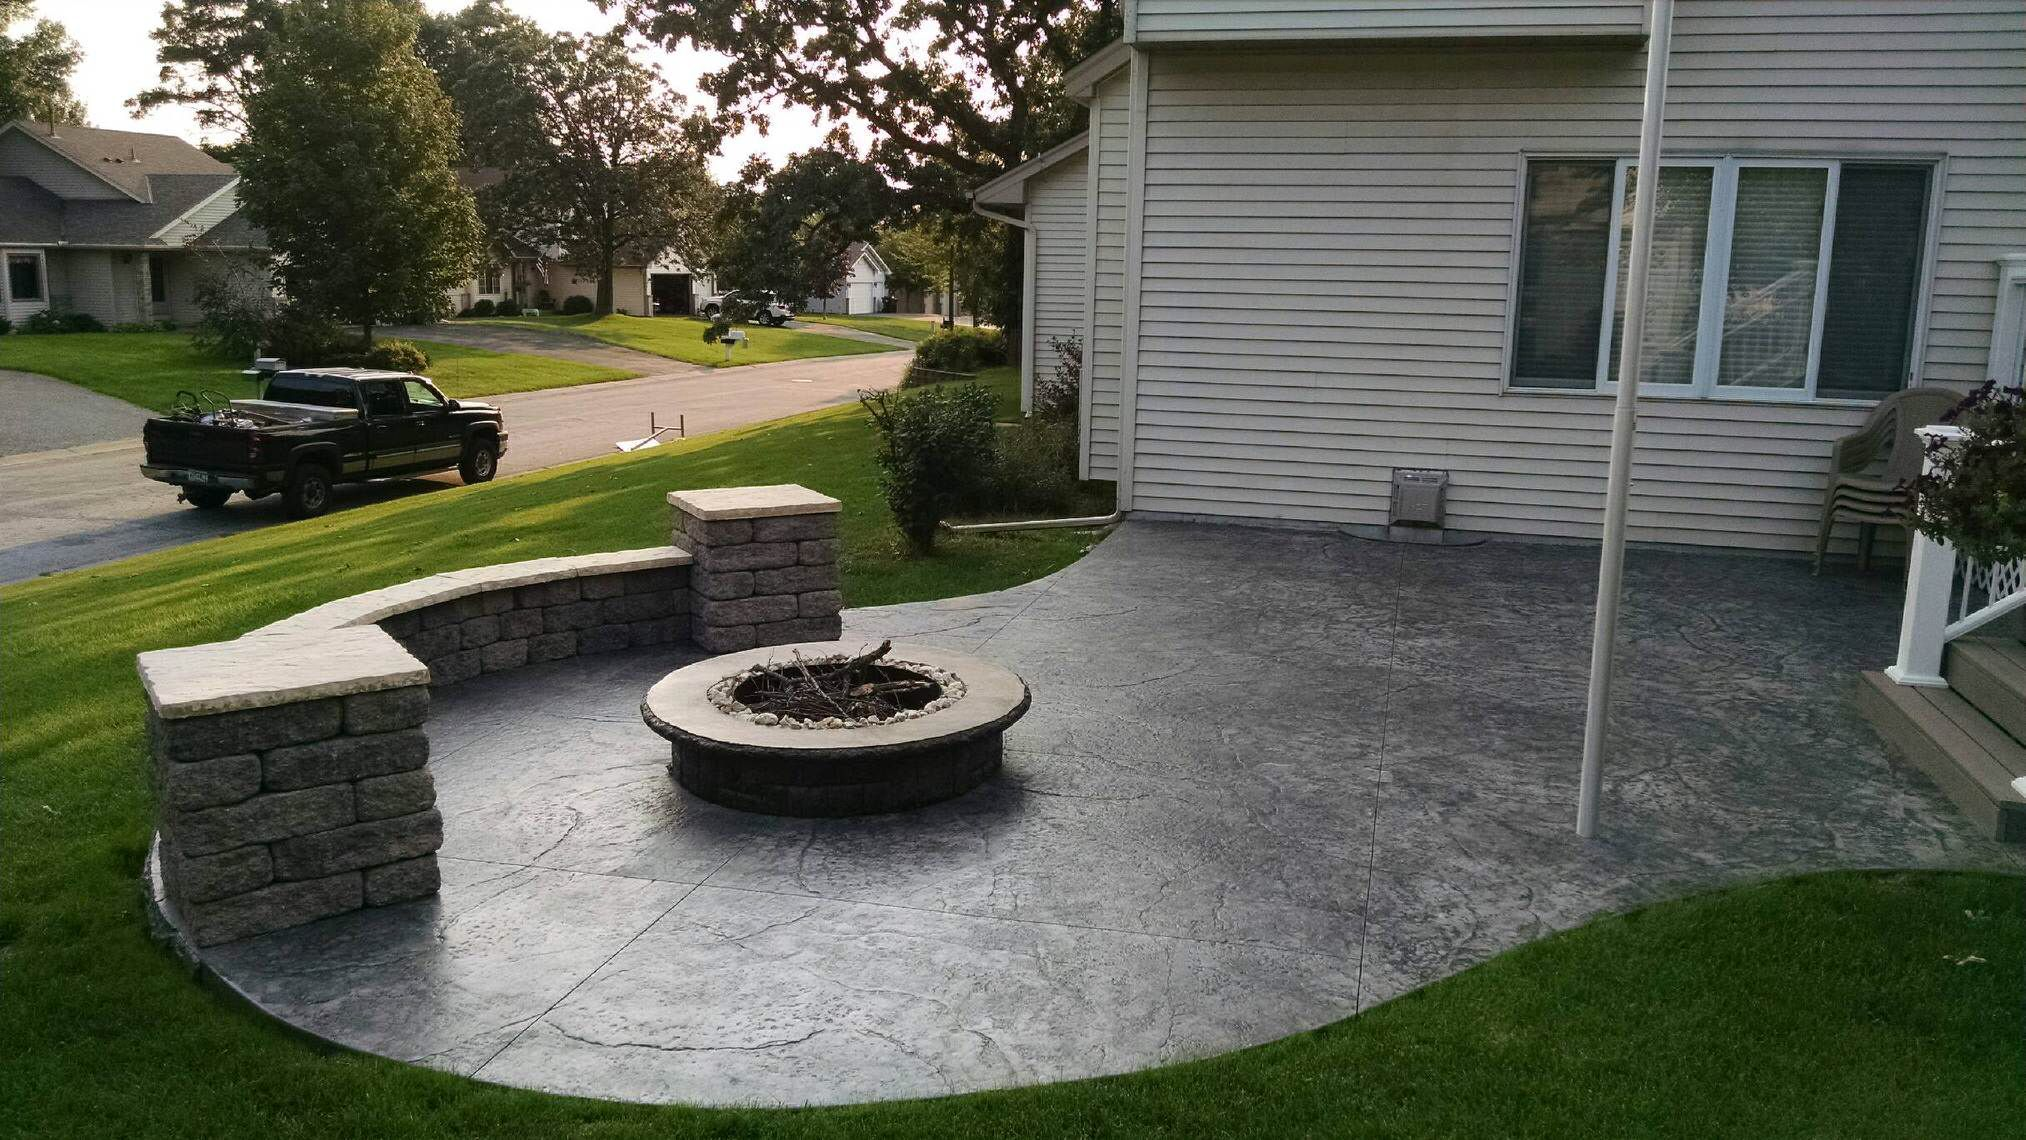 Stamped Concrete Patio With Fire Pit And Seating Walls By Sierra